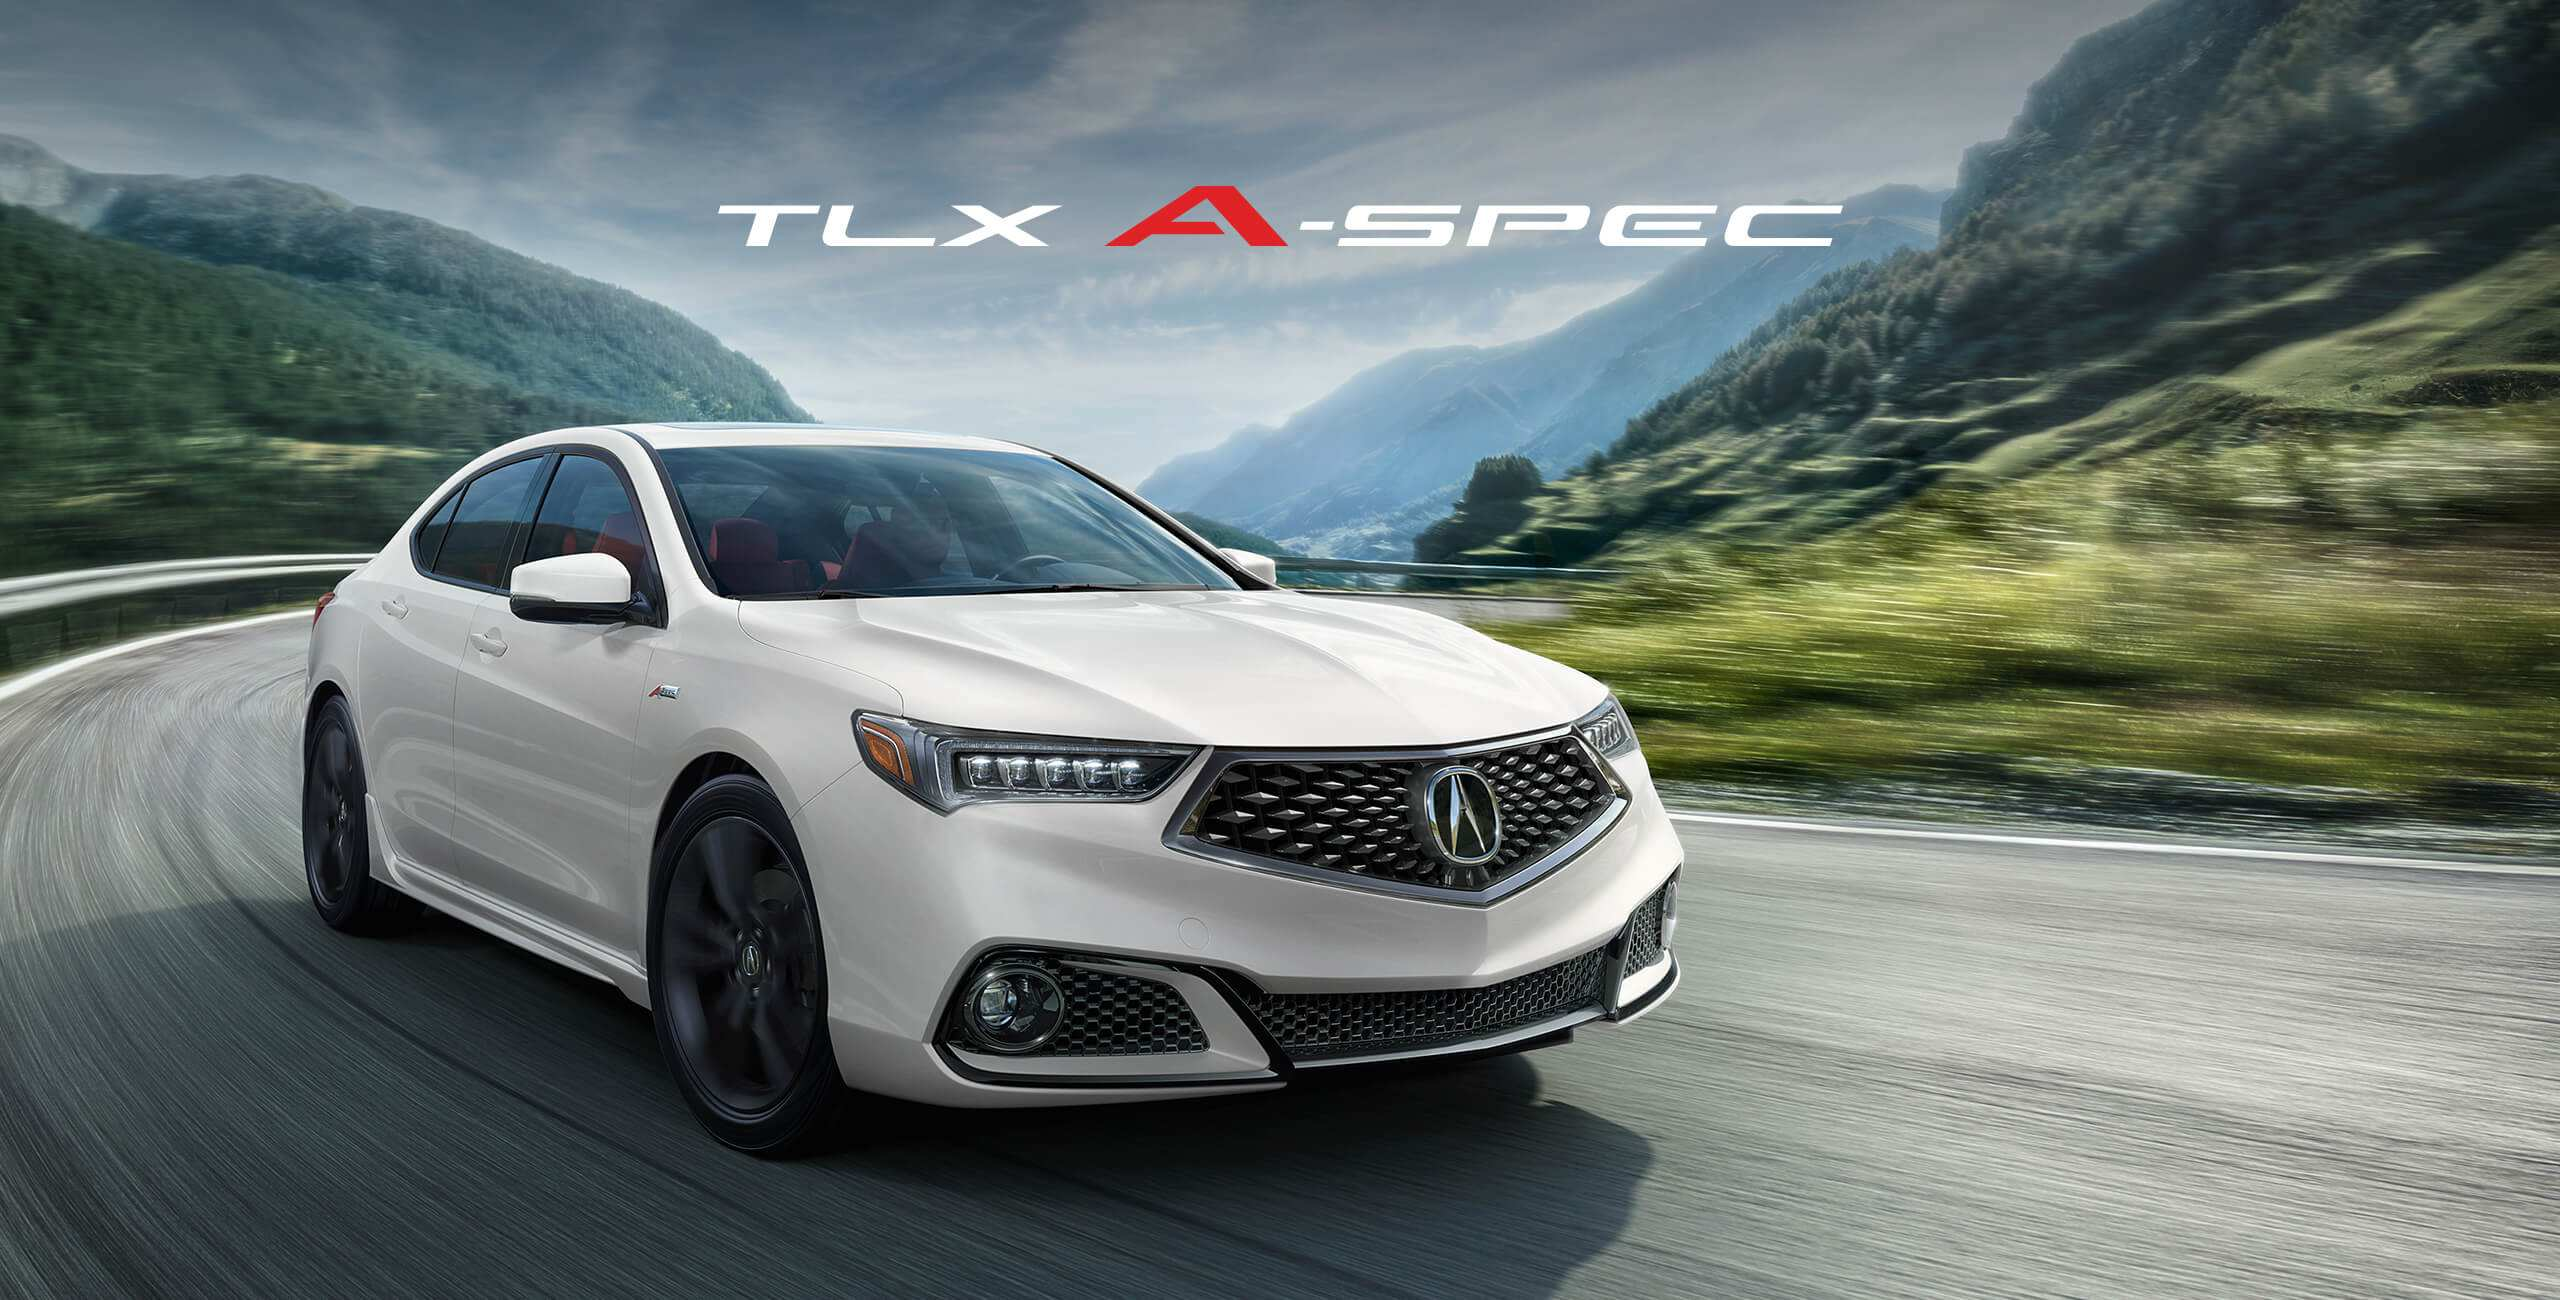 86 All New 2019 Acura Tlx Type S Photos with 2019 Acura Tlx Type S